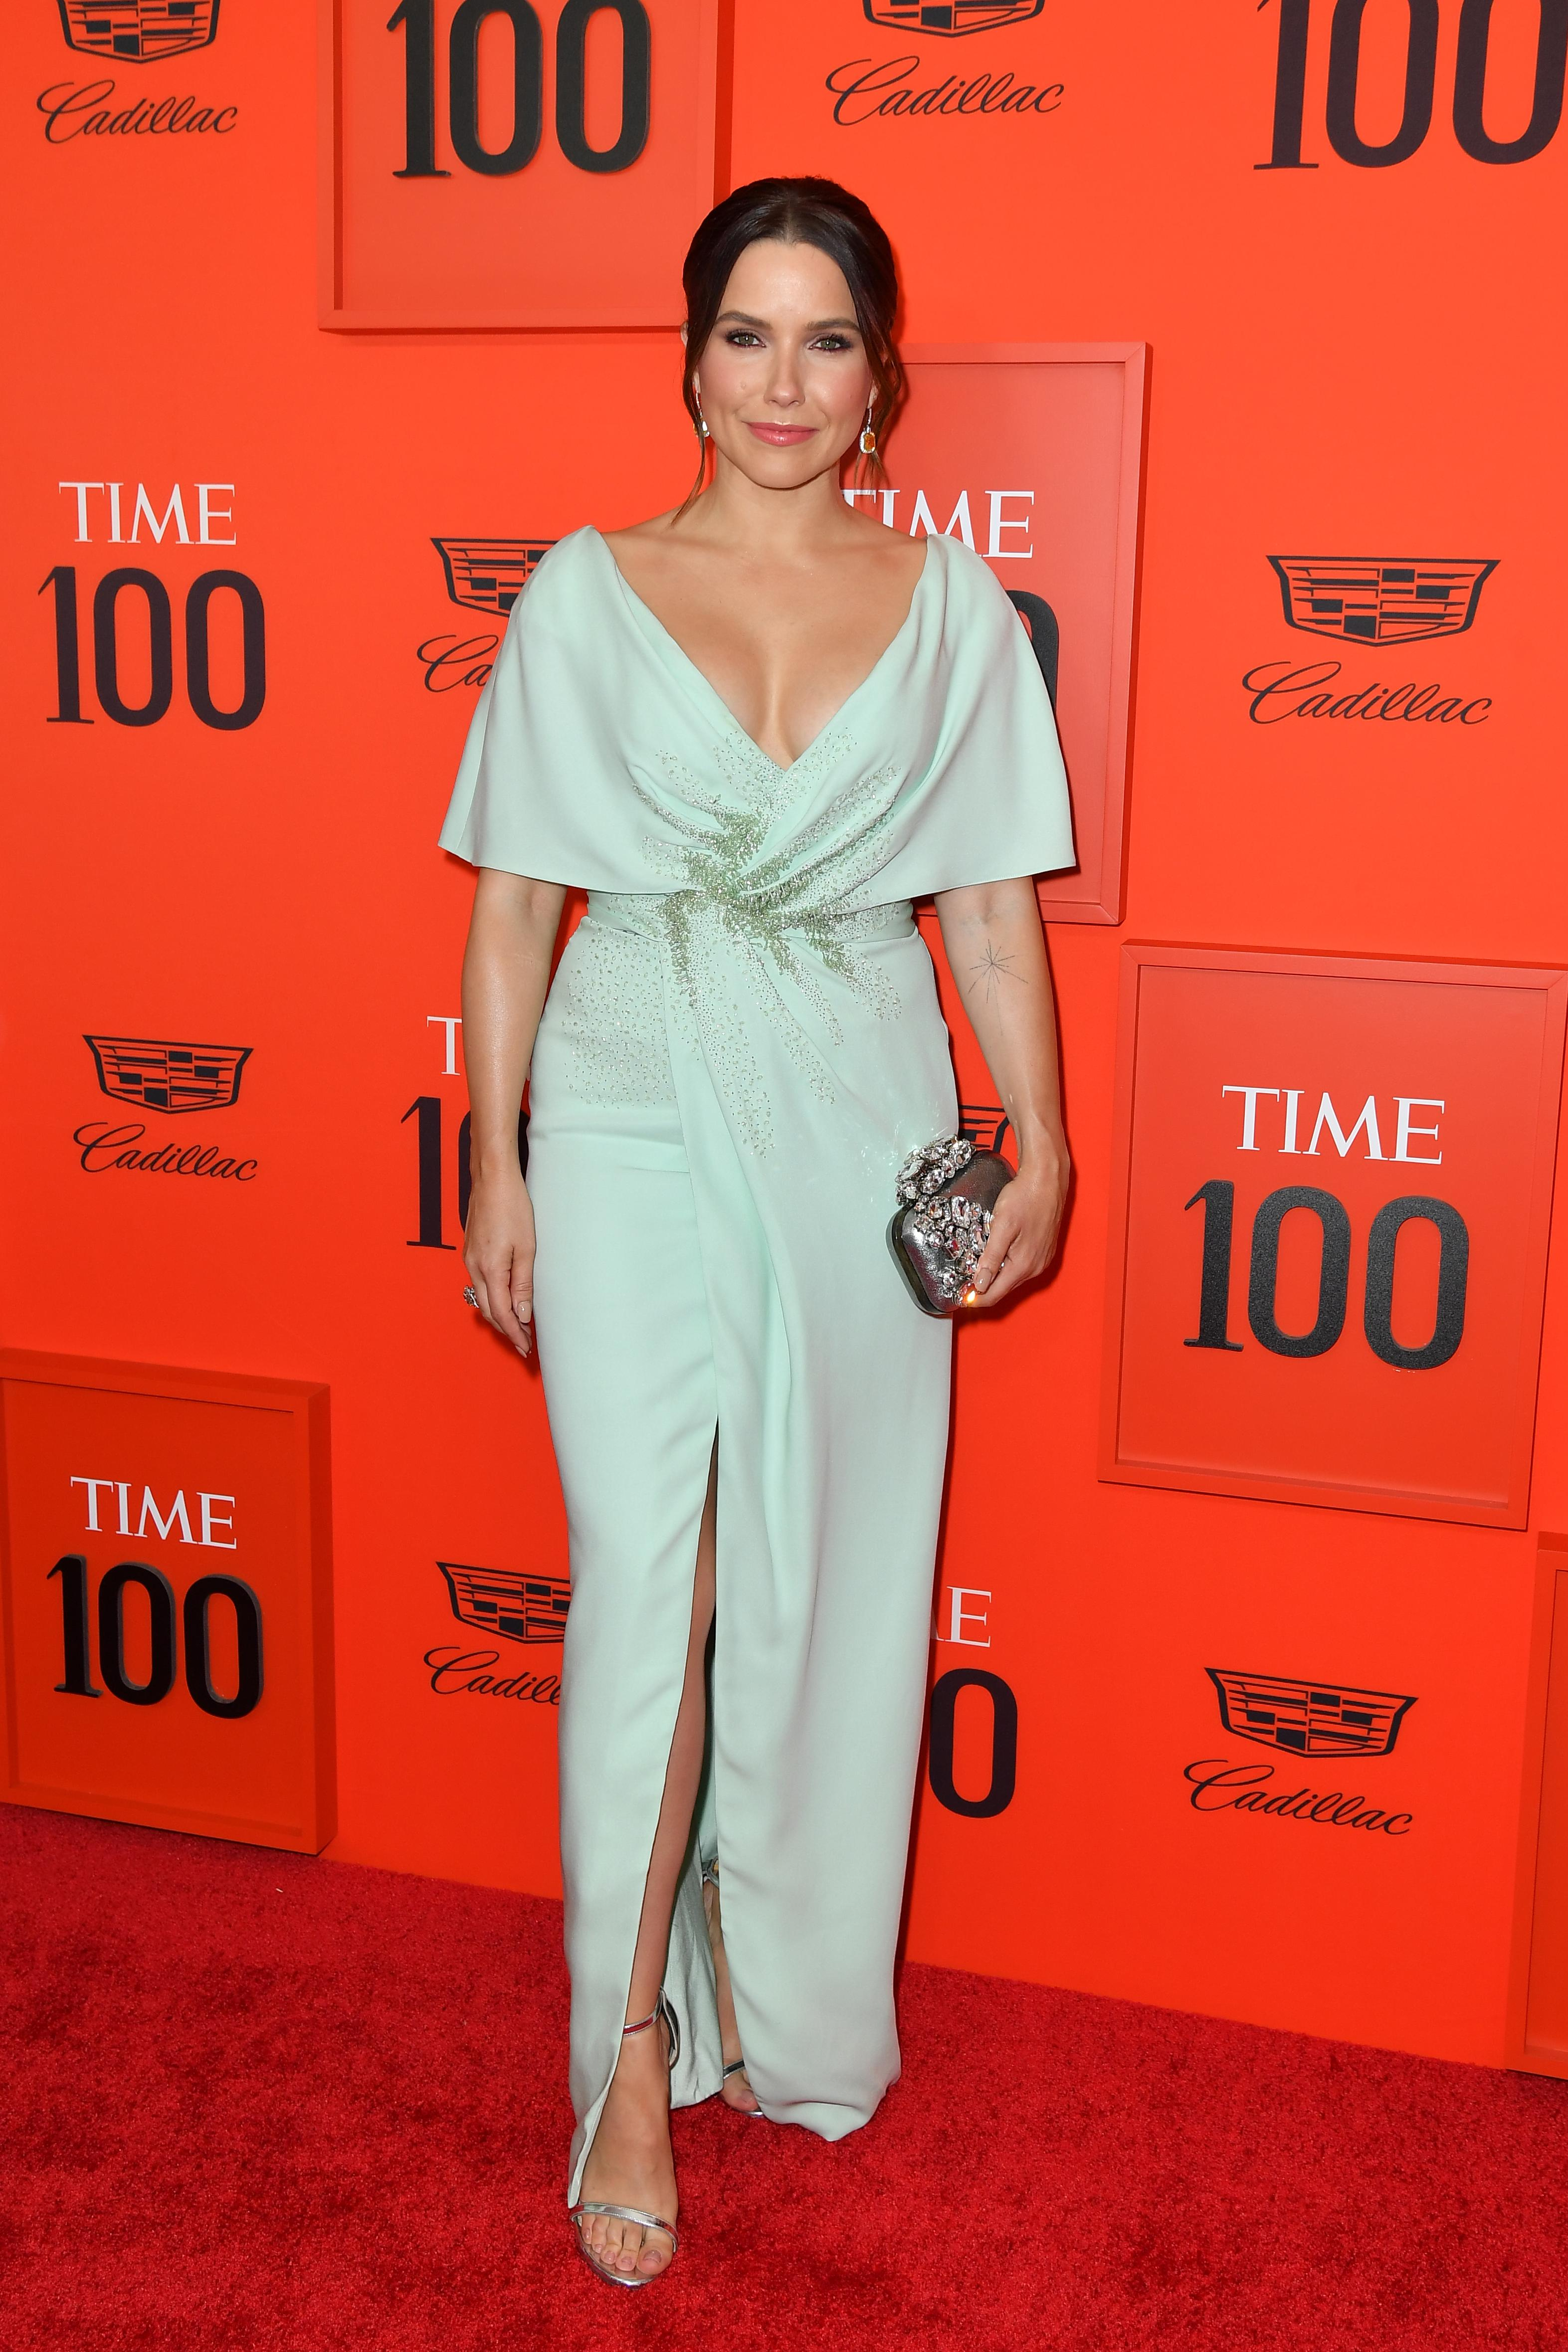 US actress Sophia Bush arrives on the red carpet for the Time 100 Gala at the Lincoln Center in New York on April 23, 2019